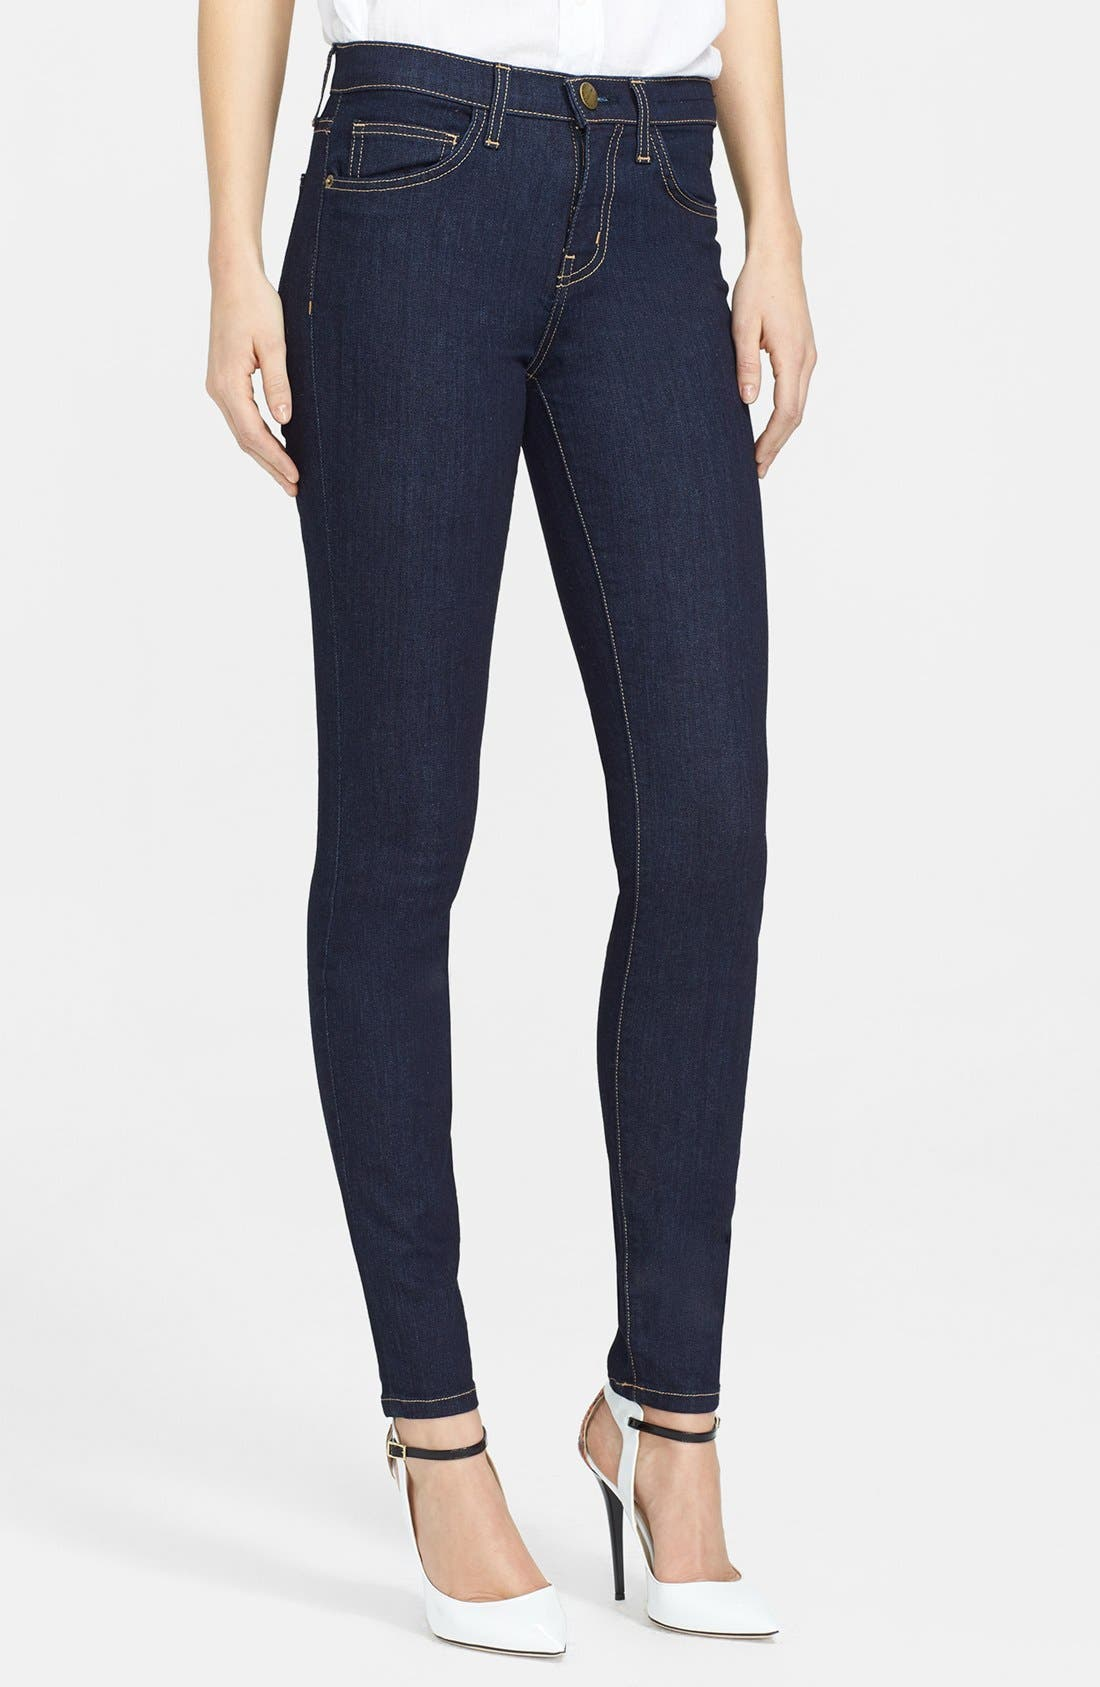 Alternate Image 1 Selected - Current/Elliott 'The High Waist' Skinny Jeans (Rinse) (Nordstrom Exclusive)